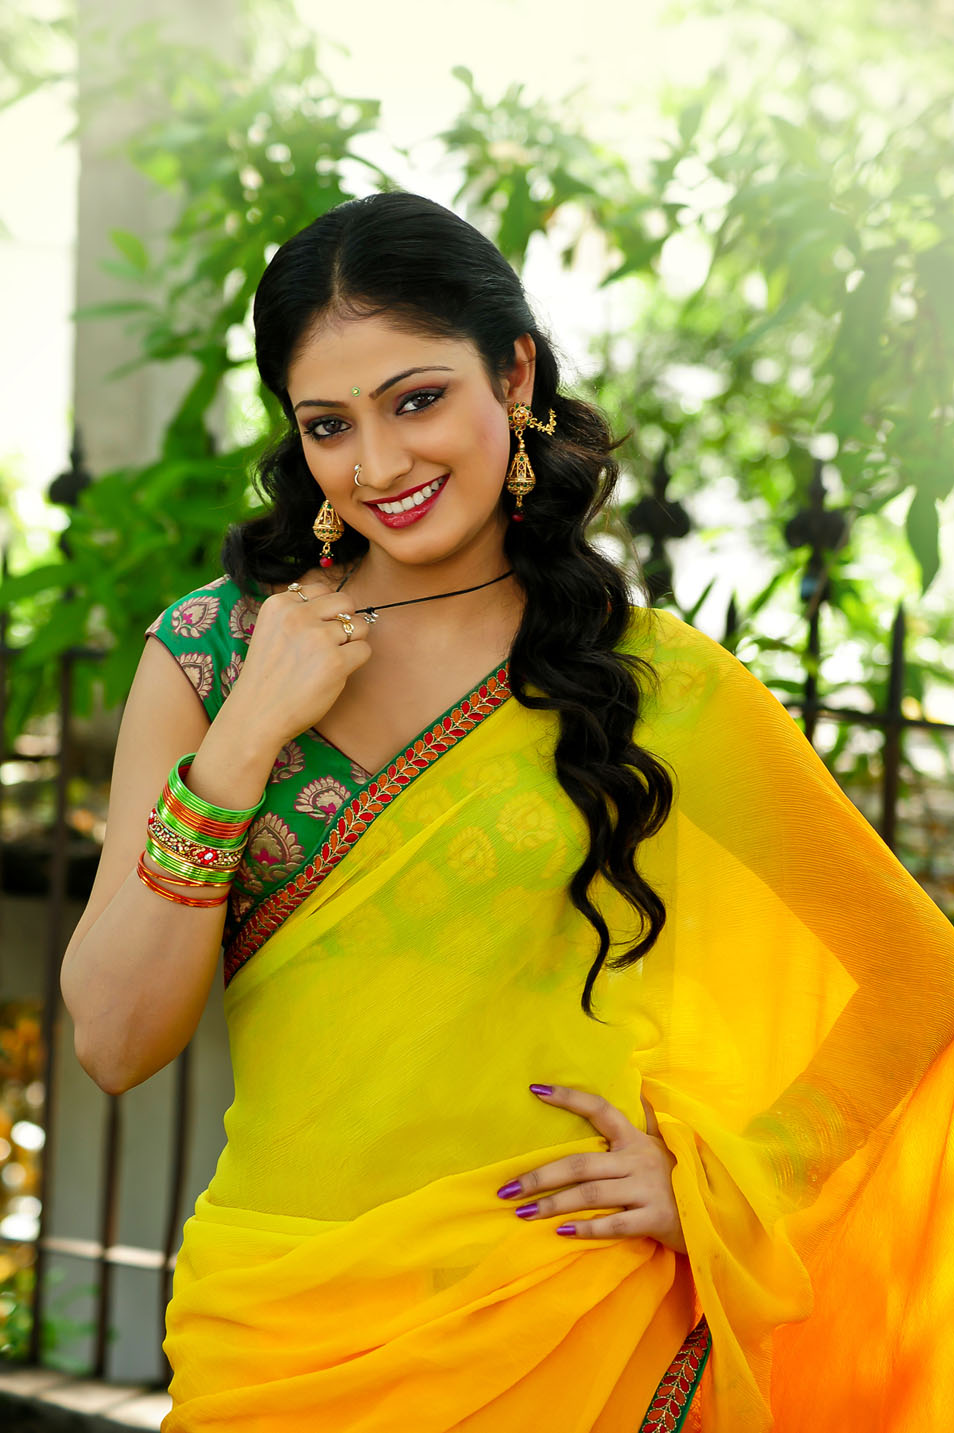 pretty Hari priya sexy in yellow saree